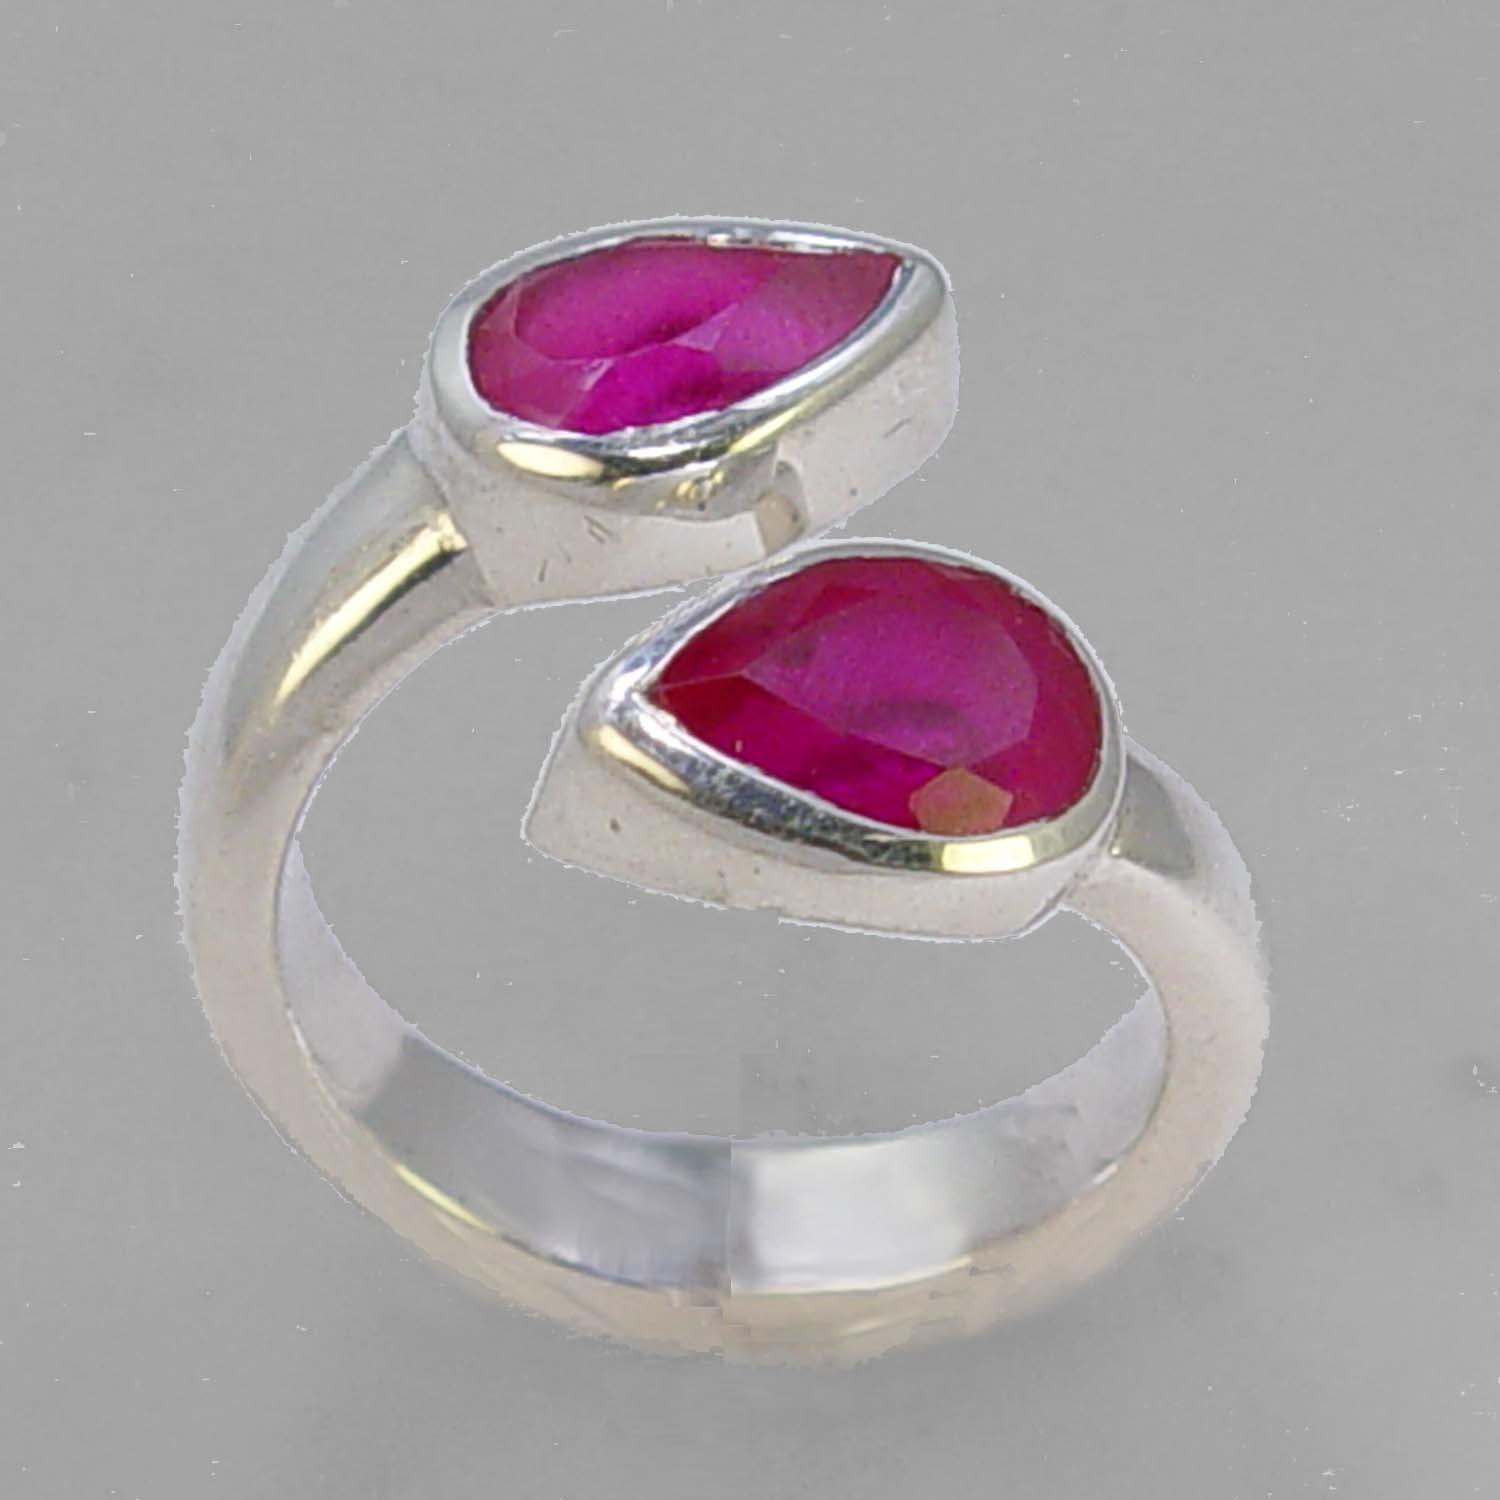 Ruby 3 ctw Faceted Pear Cut Sterling Silver Ring, Size 7, Adjustable